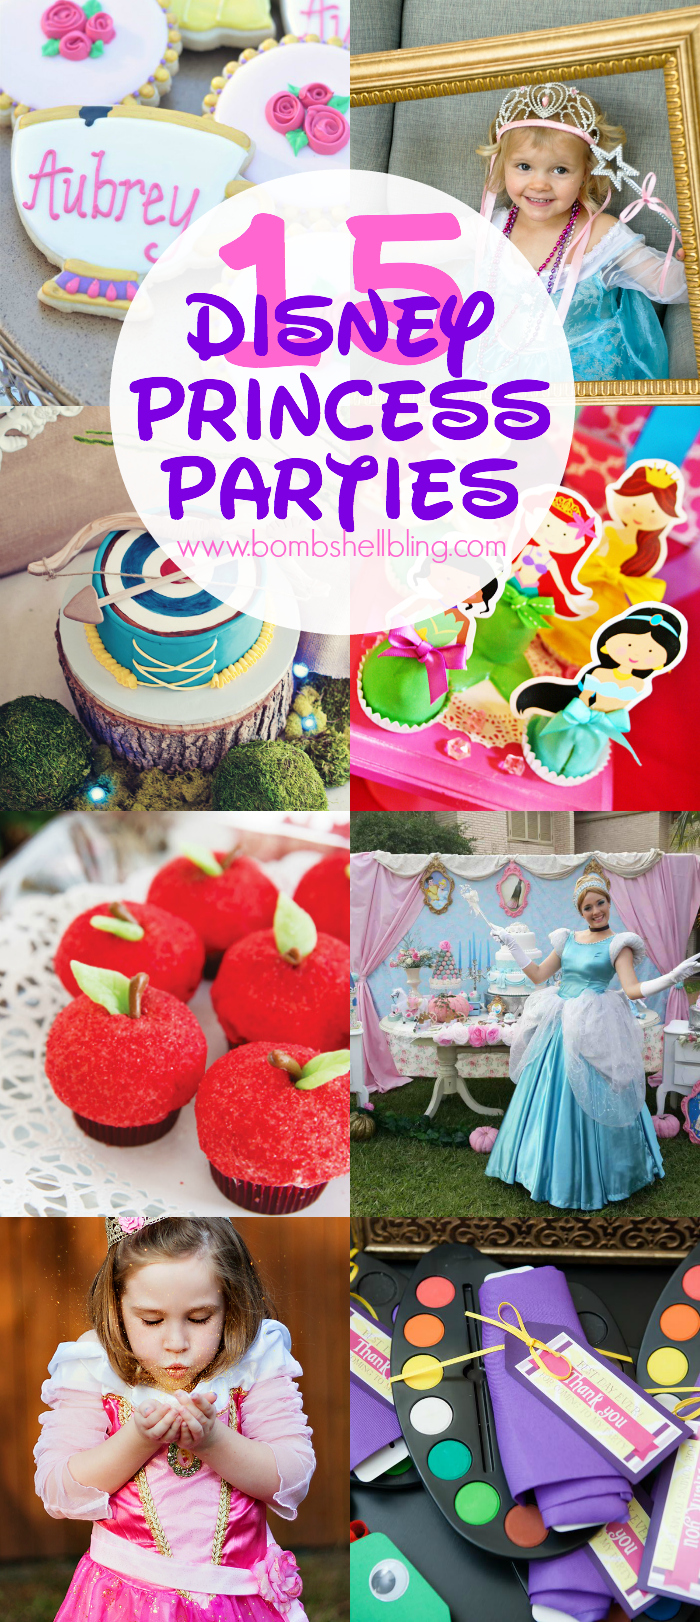 Disney Princess Parties pin collage